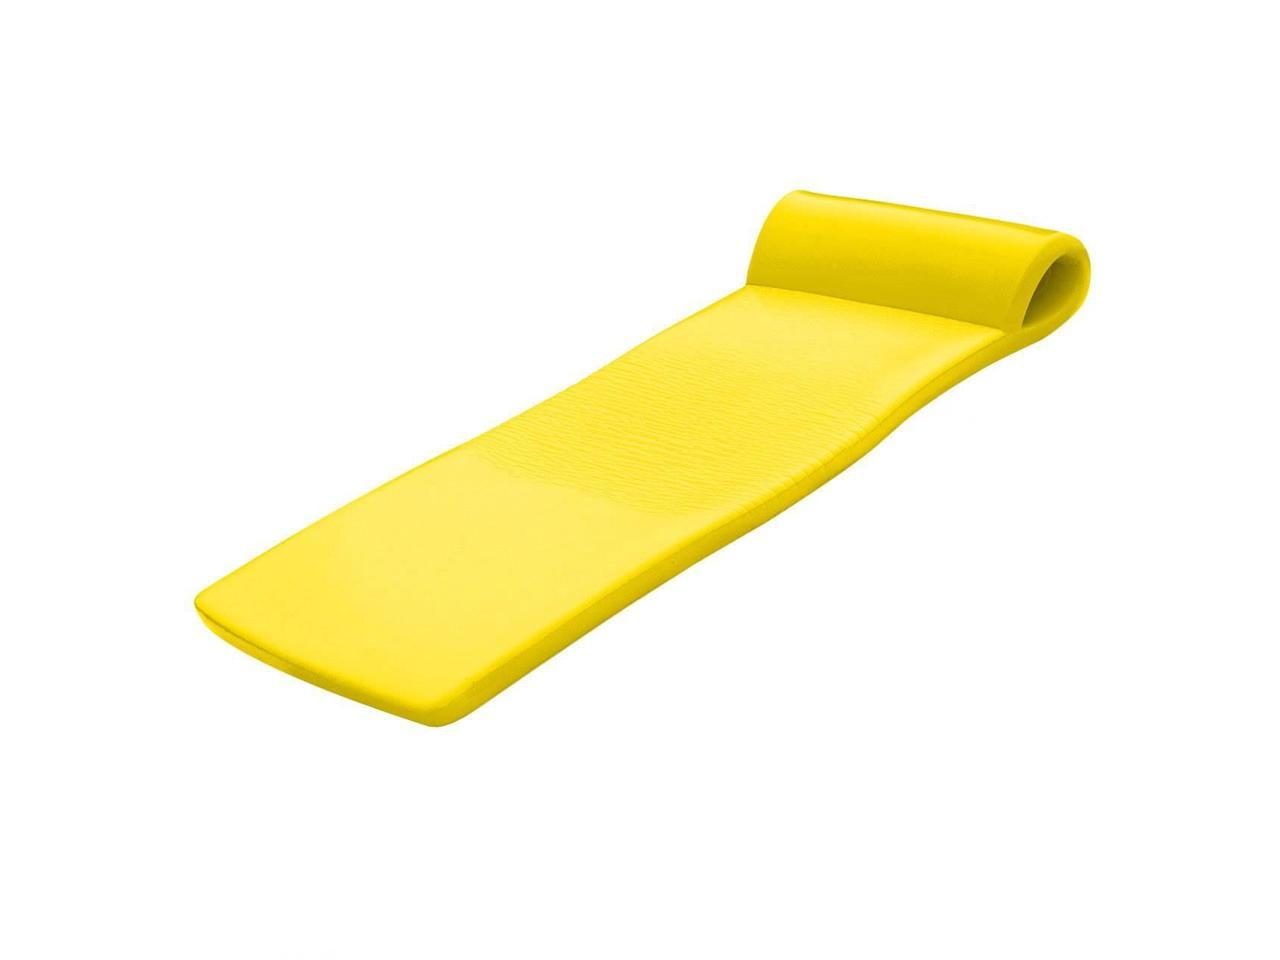 2 Pack Yellow Texas Recreation Sunsation 70 Inch Foam Raft Lounger Pool Float